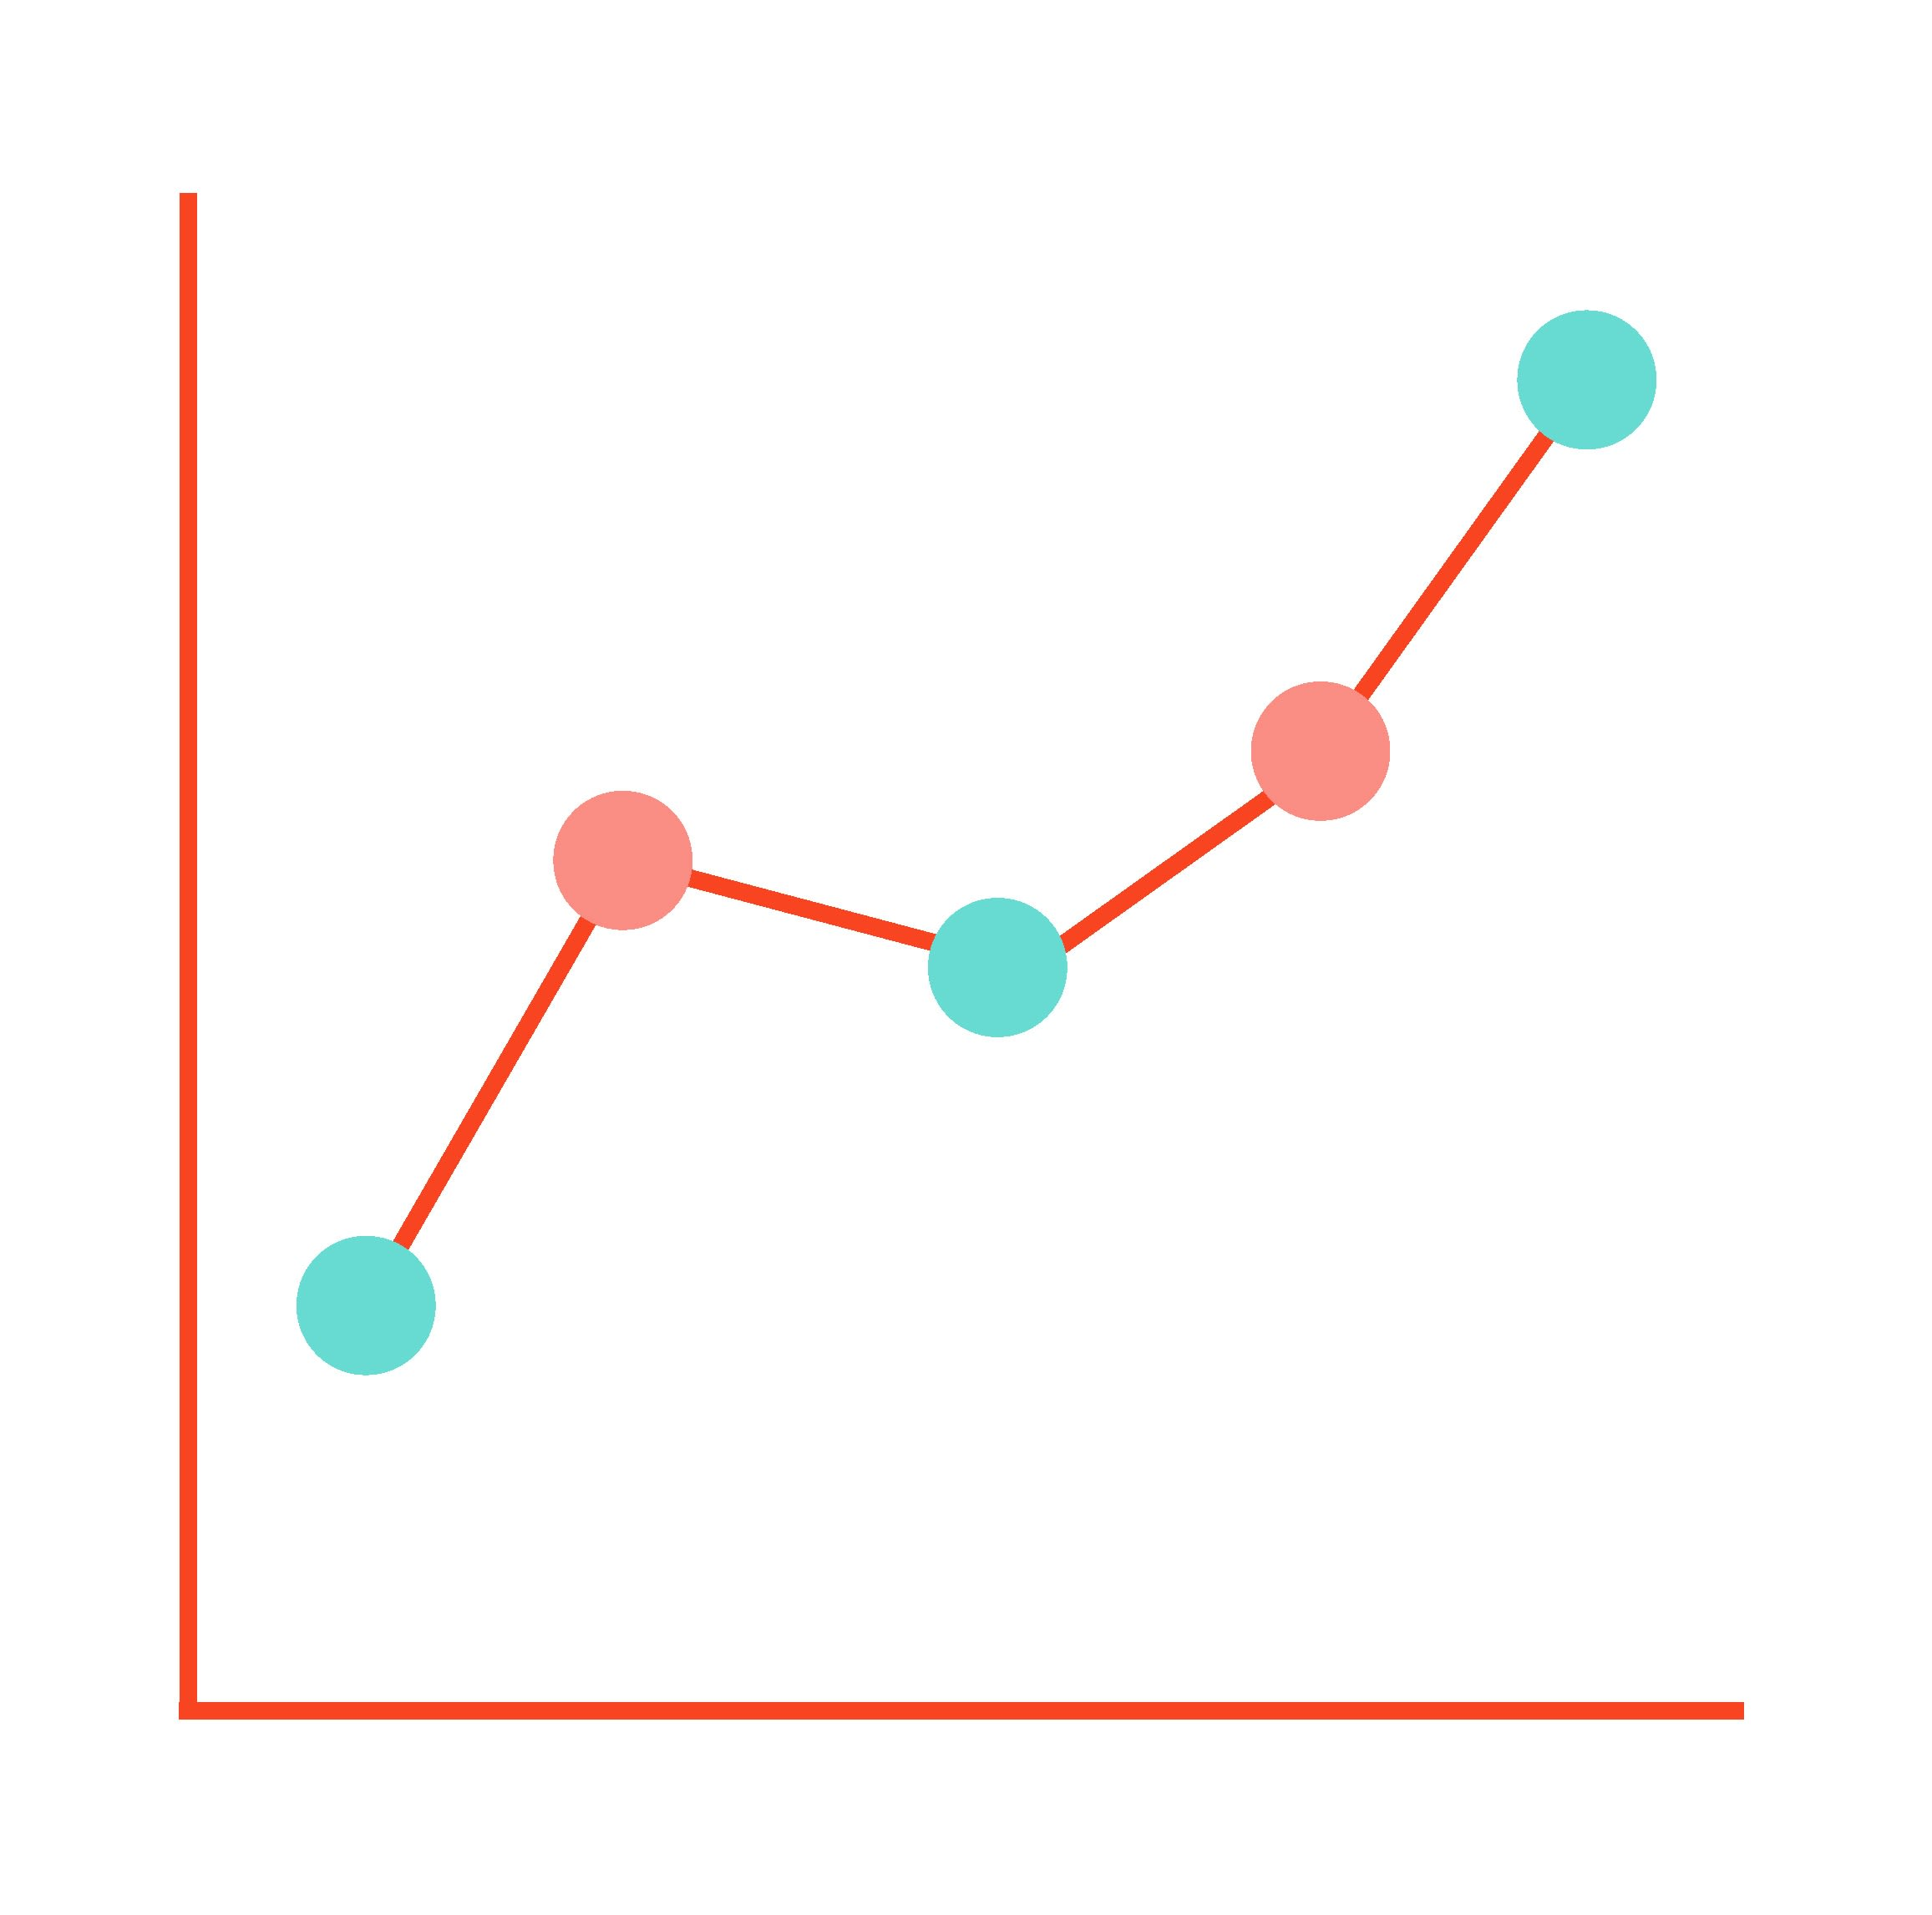 Data Visualization Example Line graph